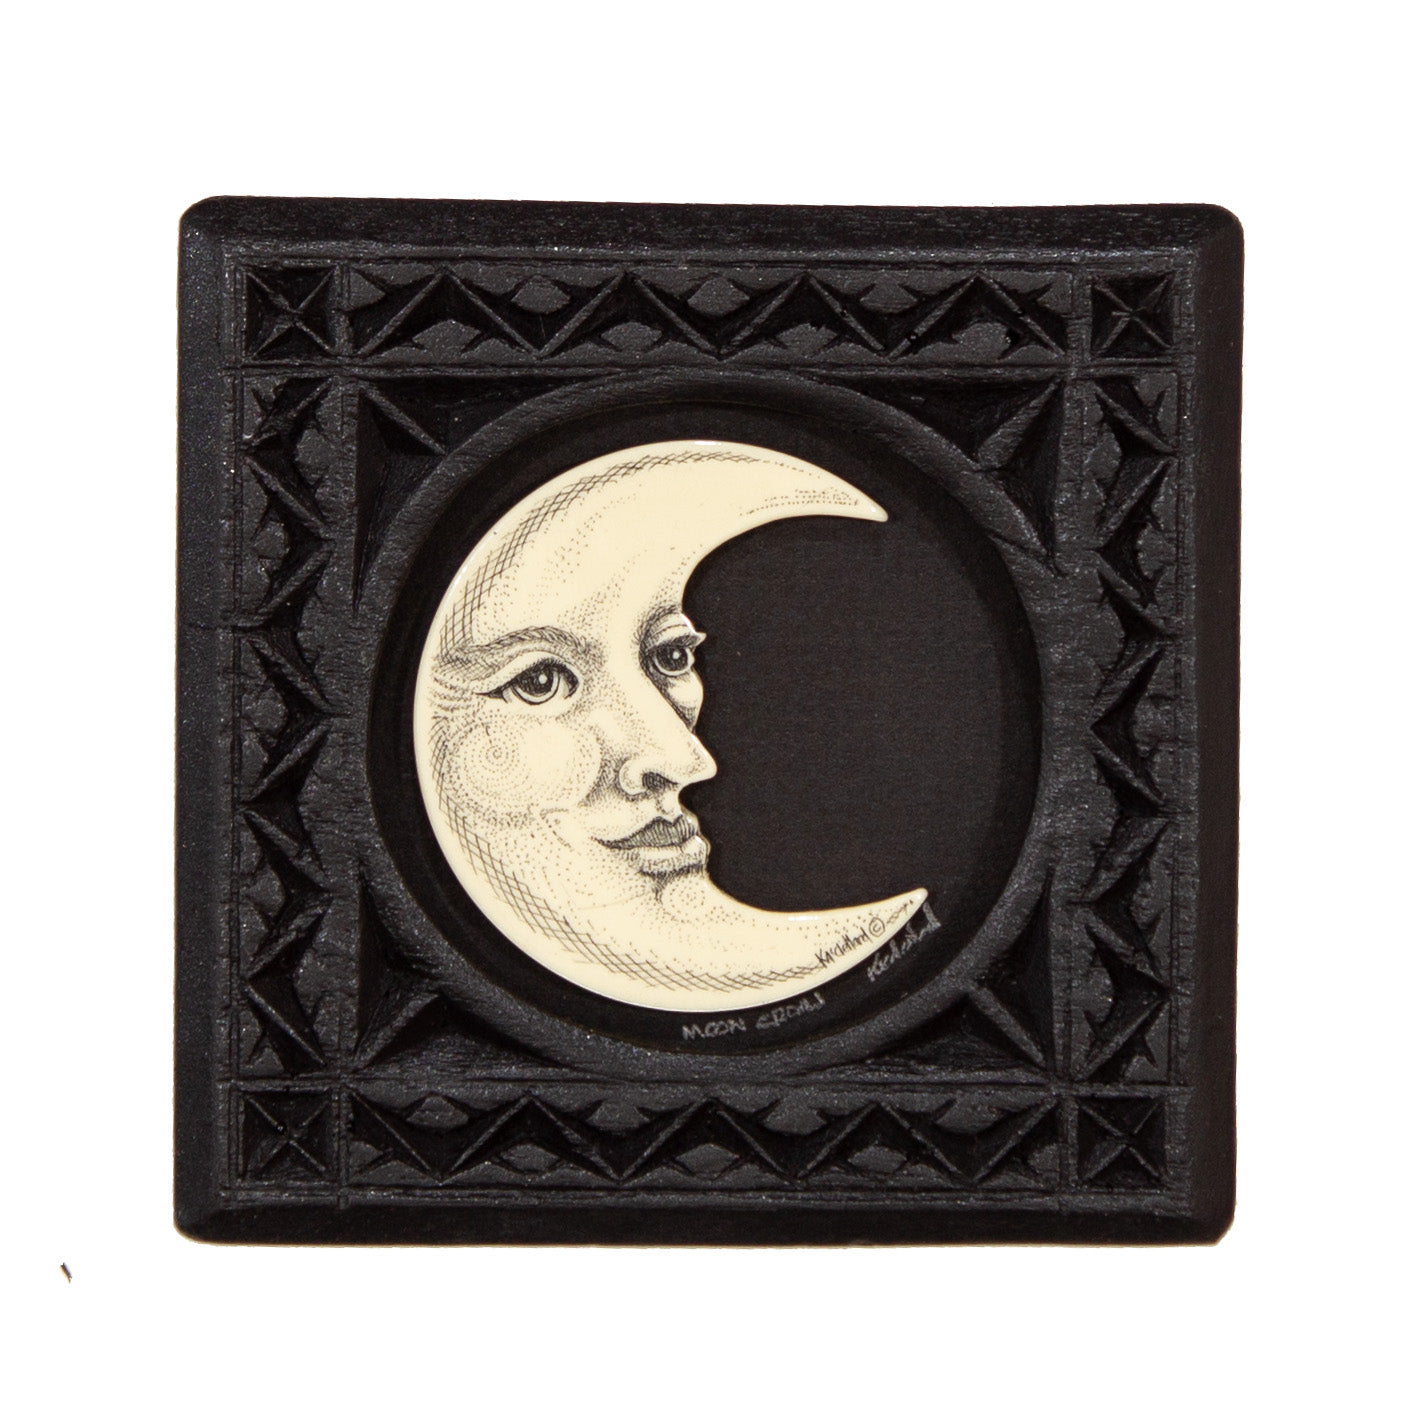 """Moon Croon"" Small Chip Carved Frame"